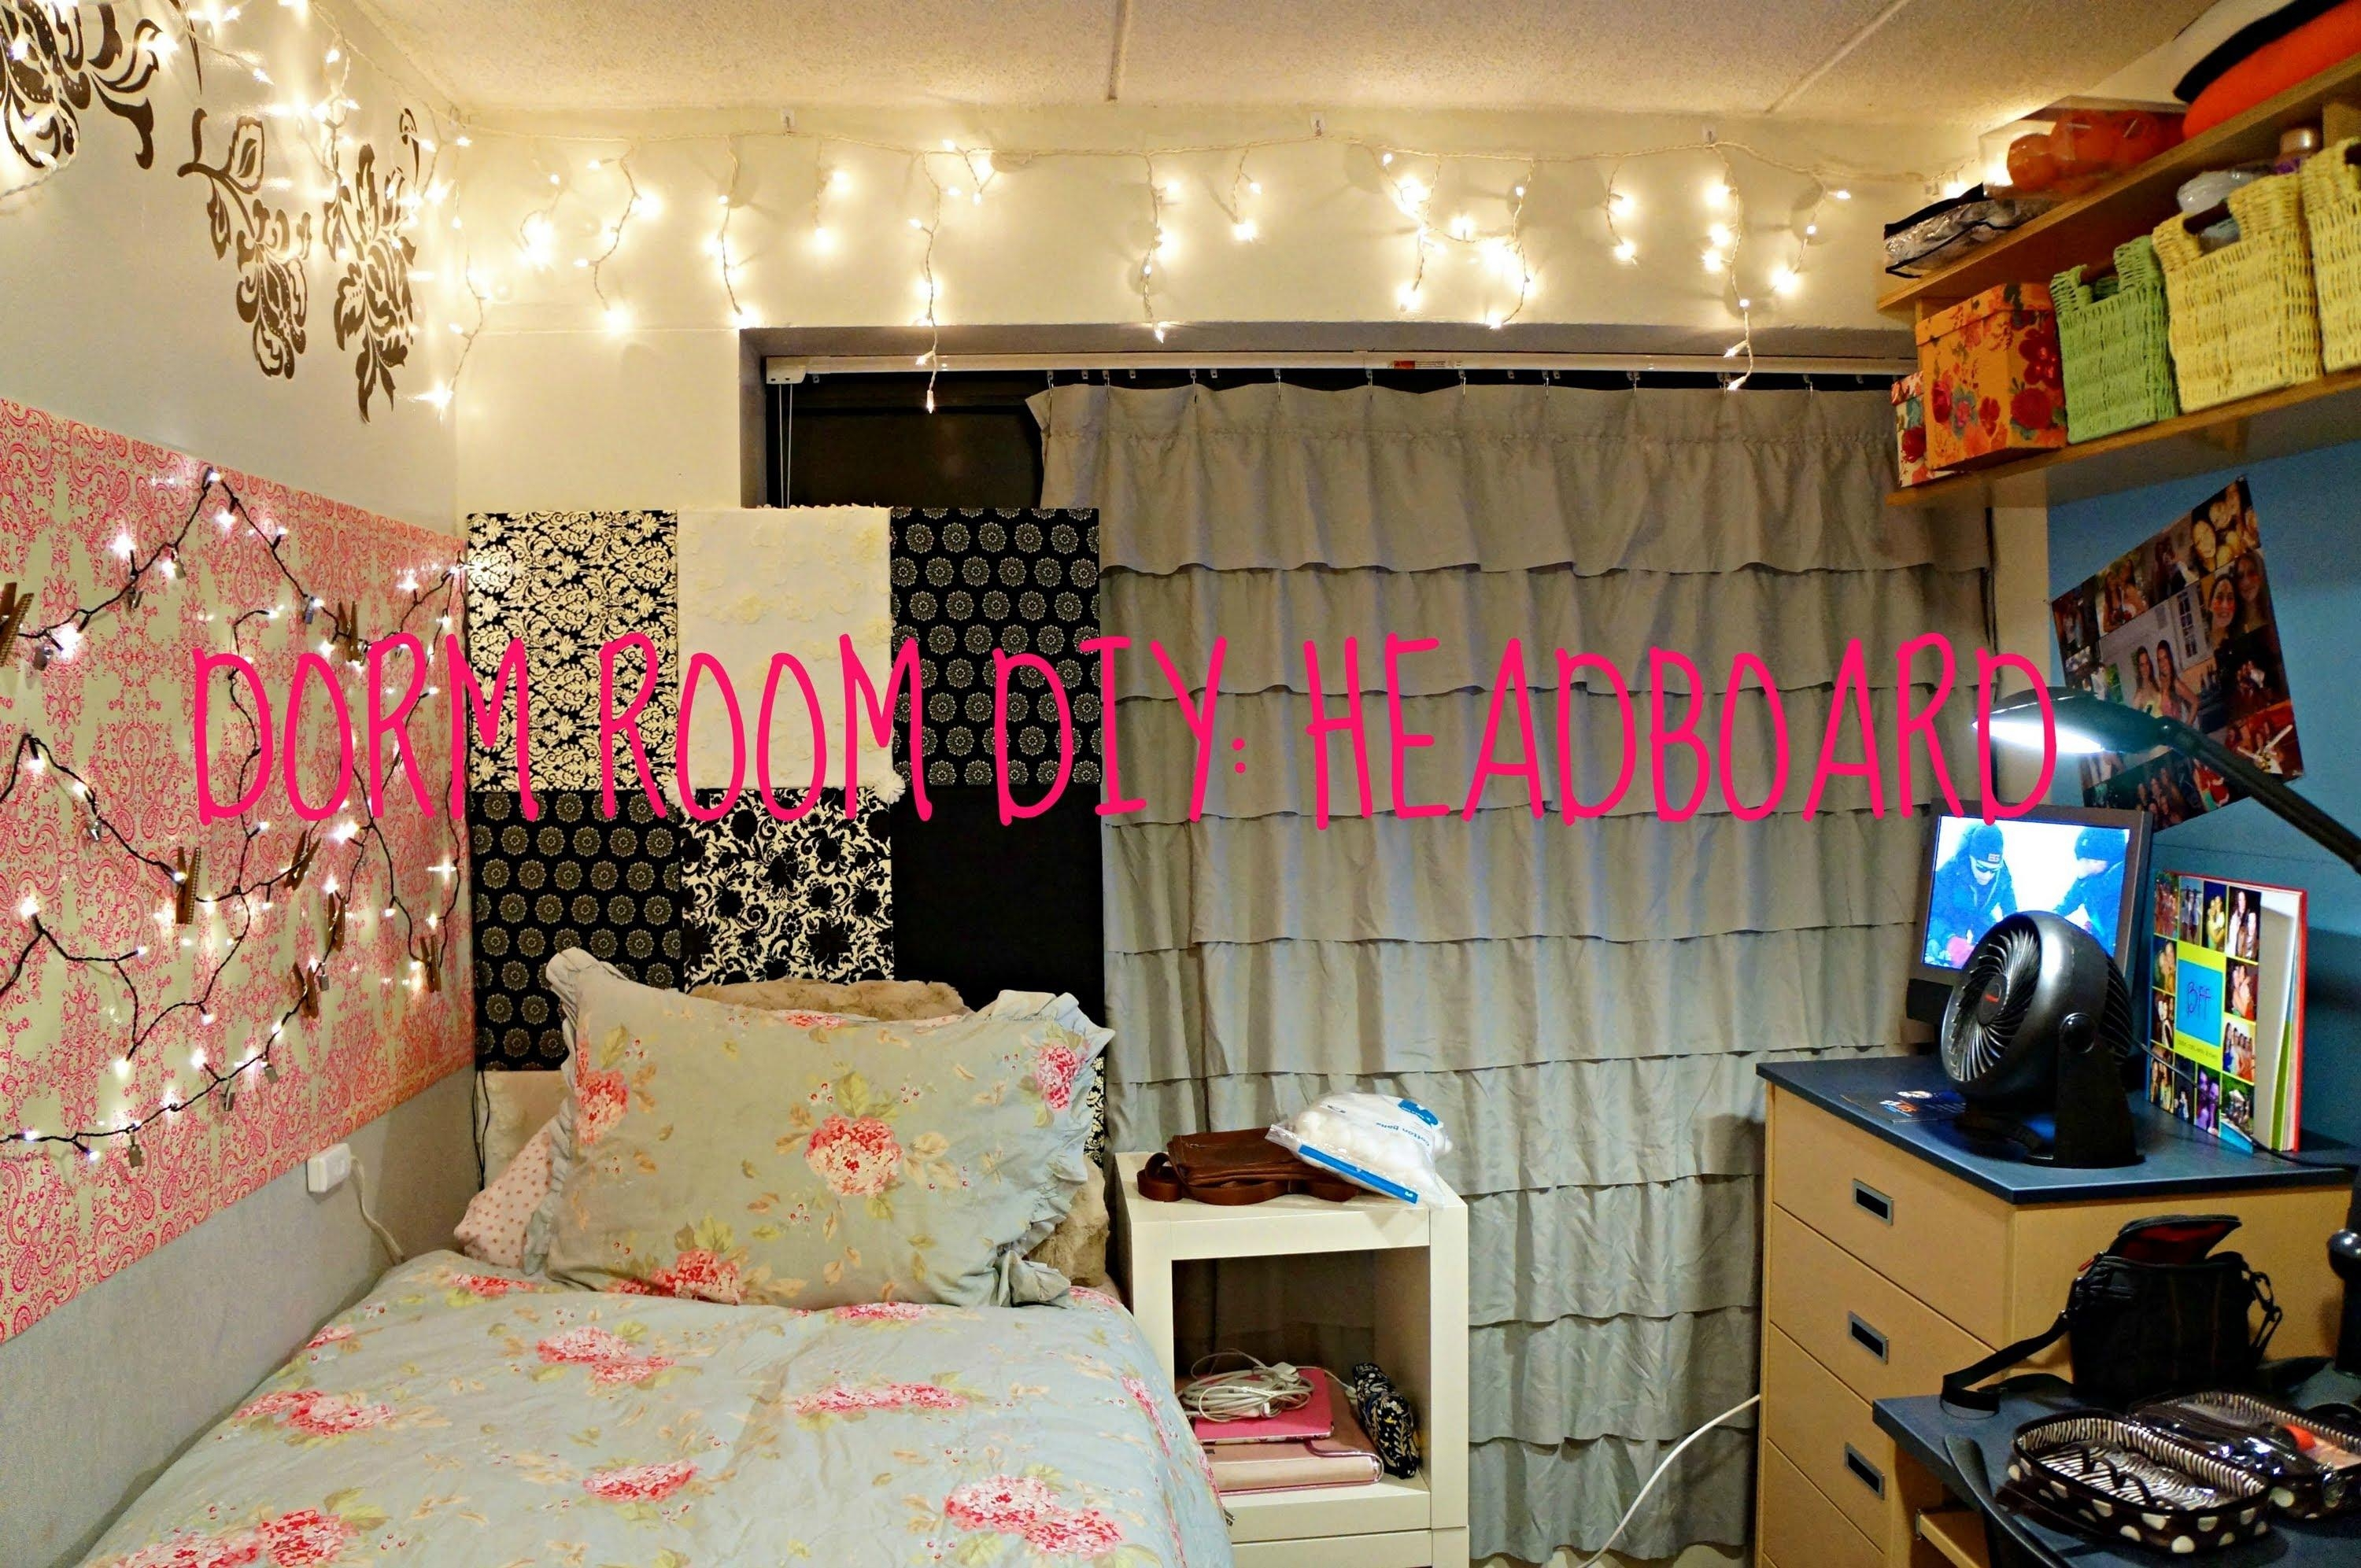 Diy: Headboard! | Dorm Room Diy – Youtube Within Wall Art For College Dorms (Image 11 of 20)